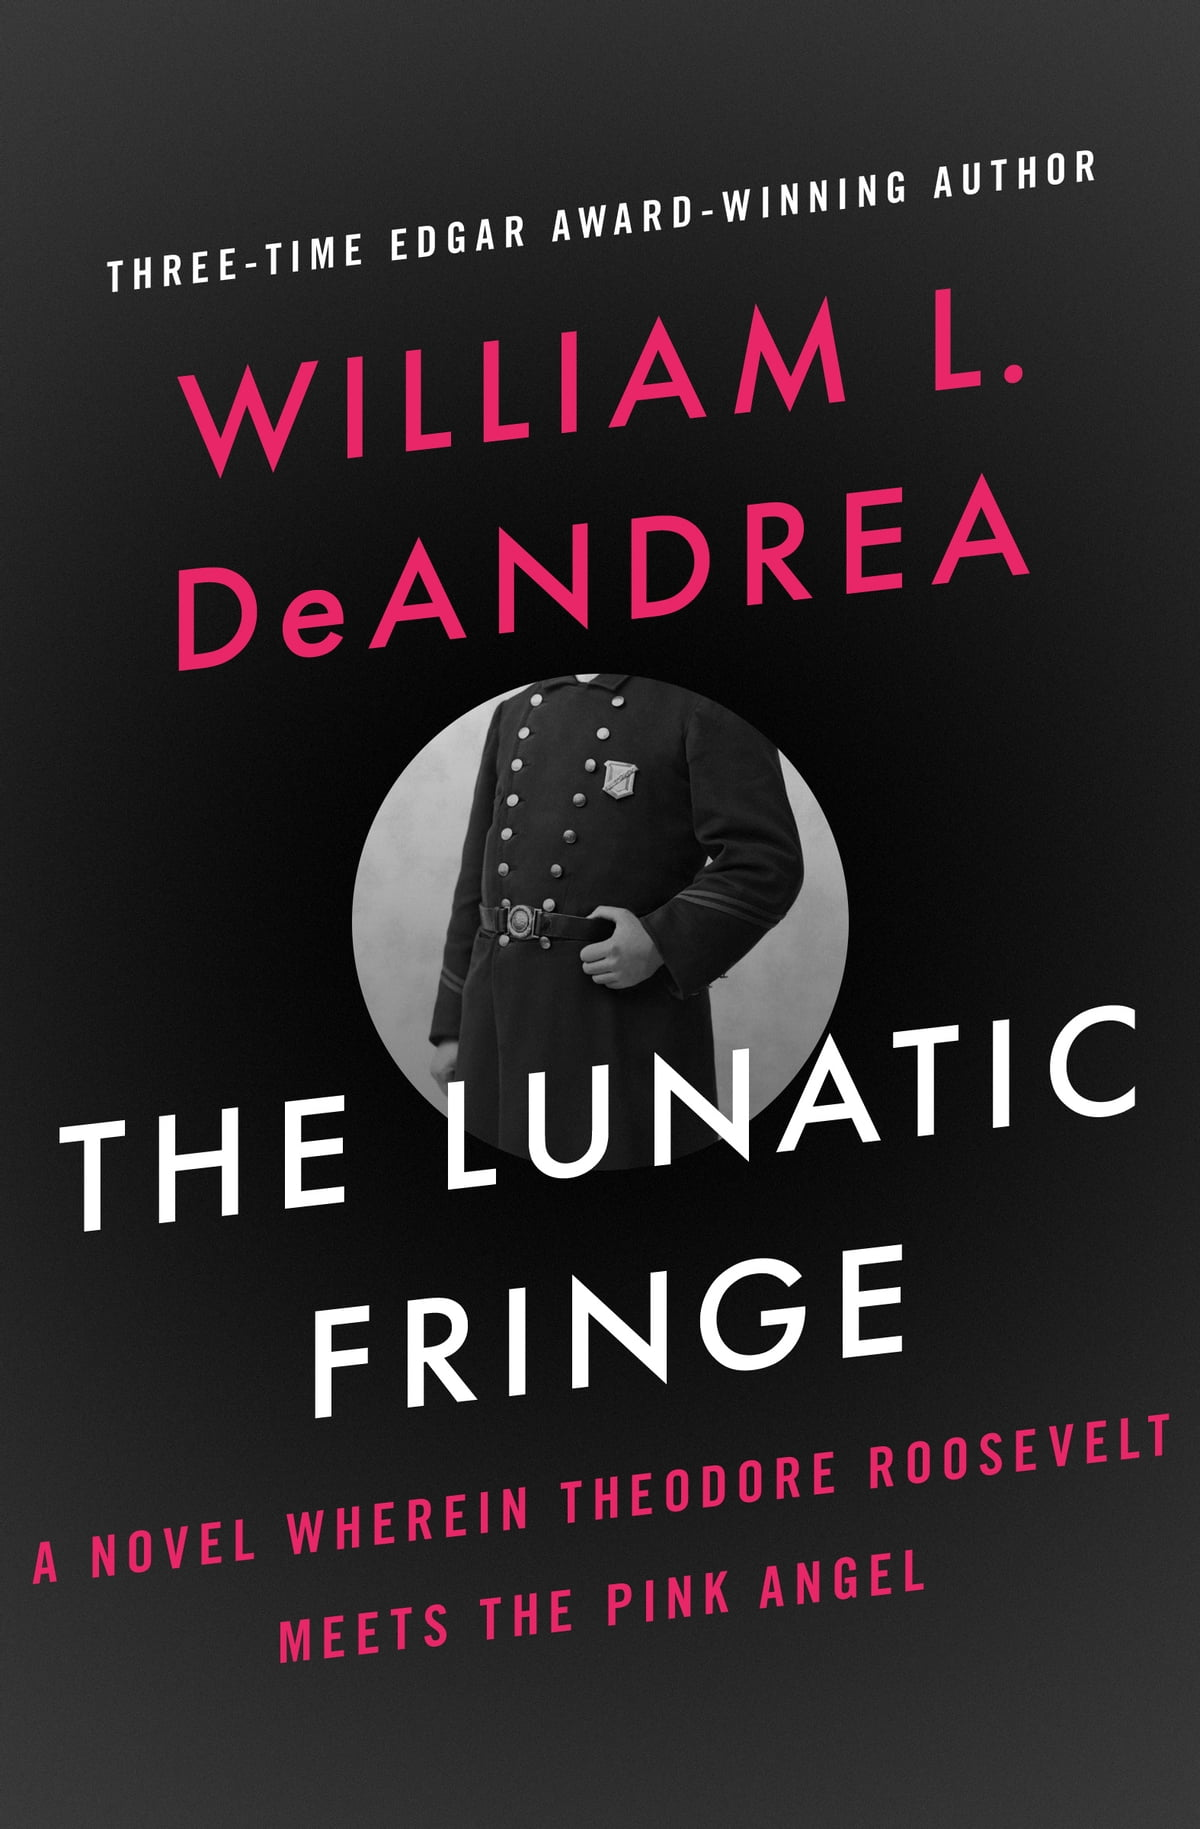 The lunatic fringe ebook by william l deandrea 9781453290262 the lunatic fringe ebook by william l deandrea 9781453290262 rakuten kobo fandeluxe Ebook collections